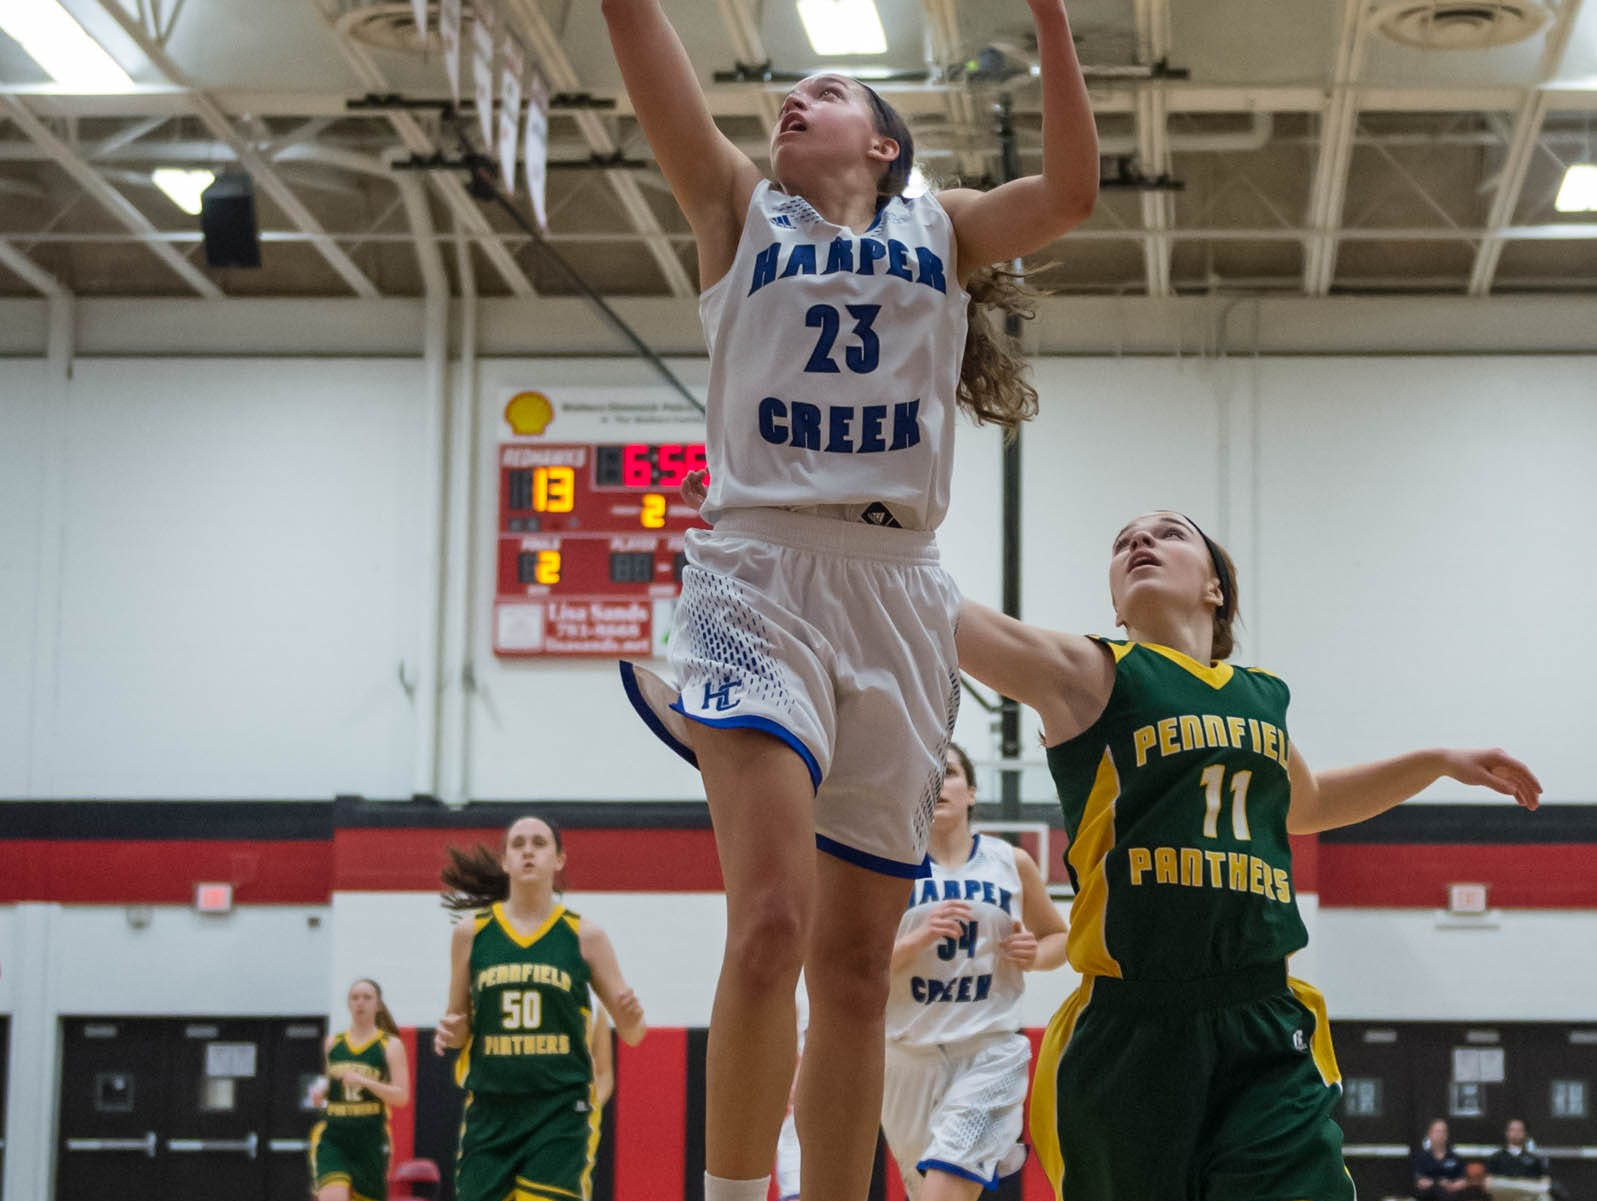 Harper Creek's Charley Andrews (23) goes for the layup in first round of districts game at Marshall Monday evening.